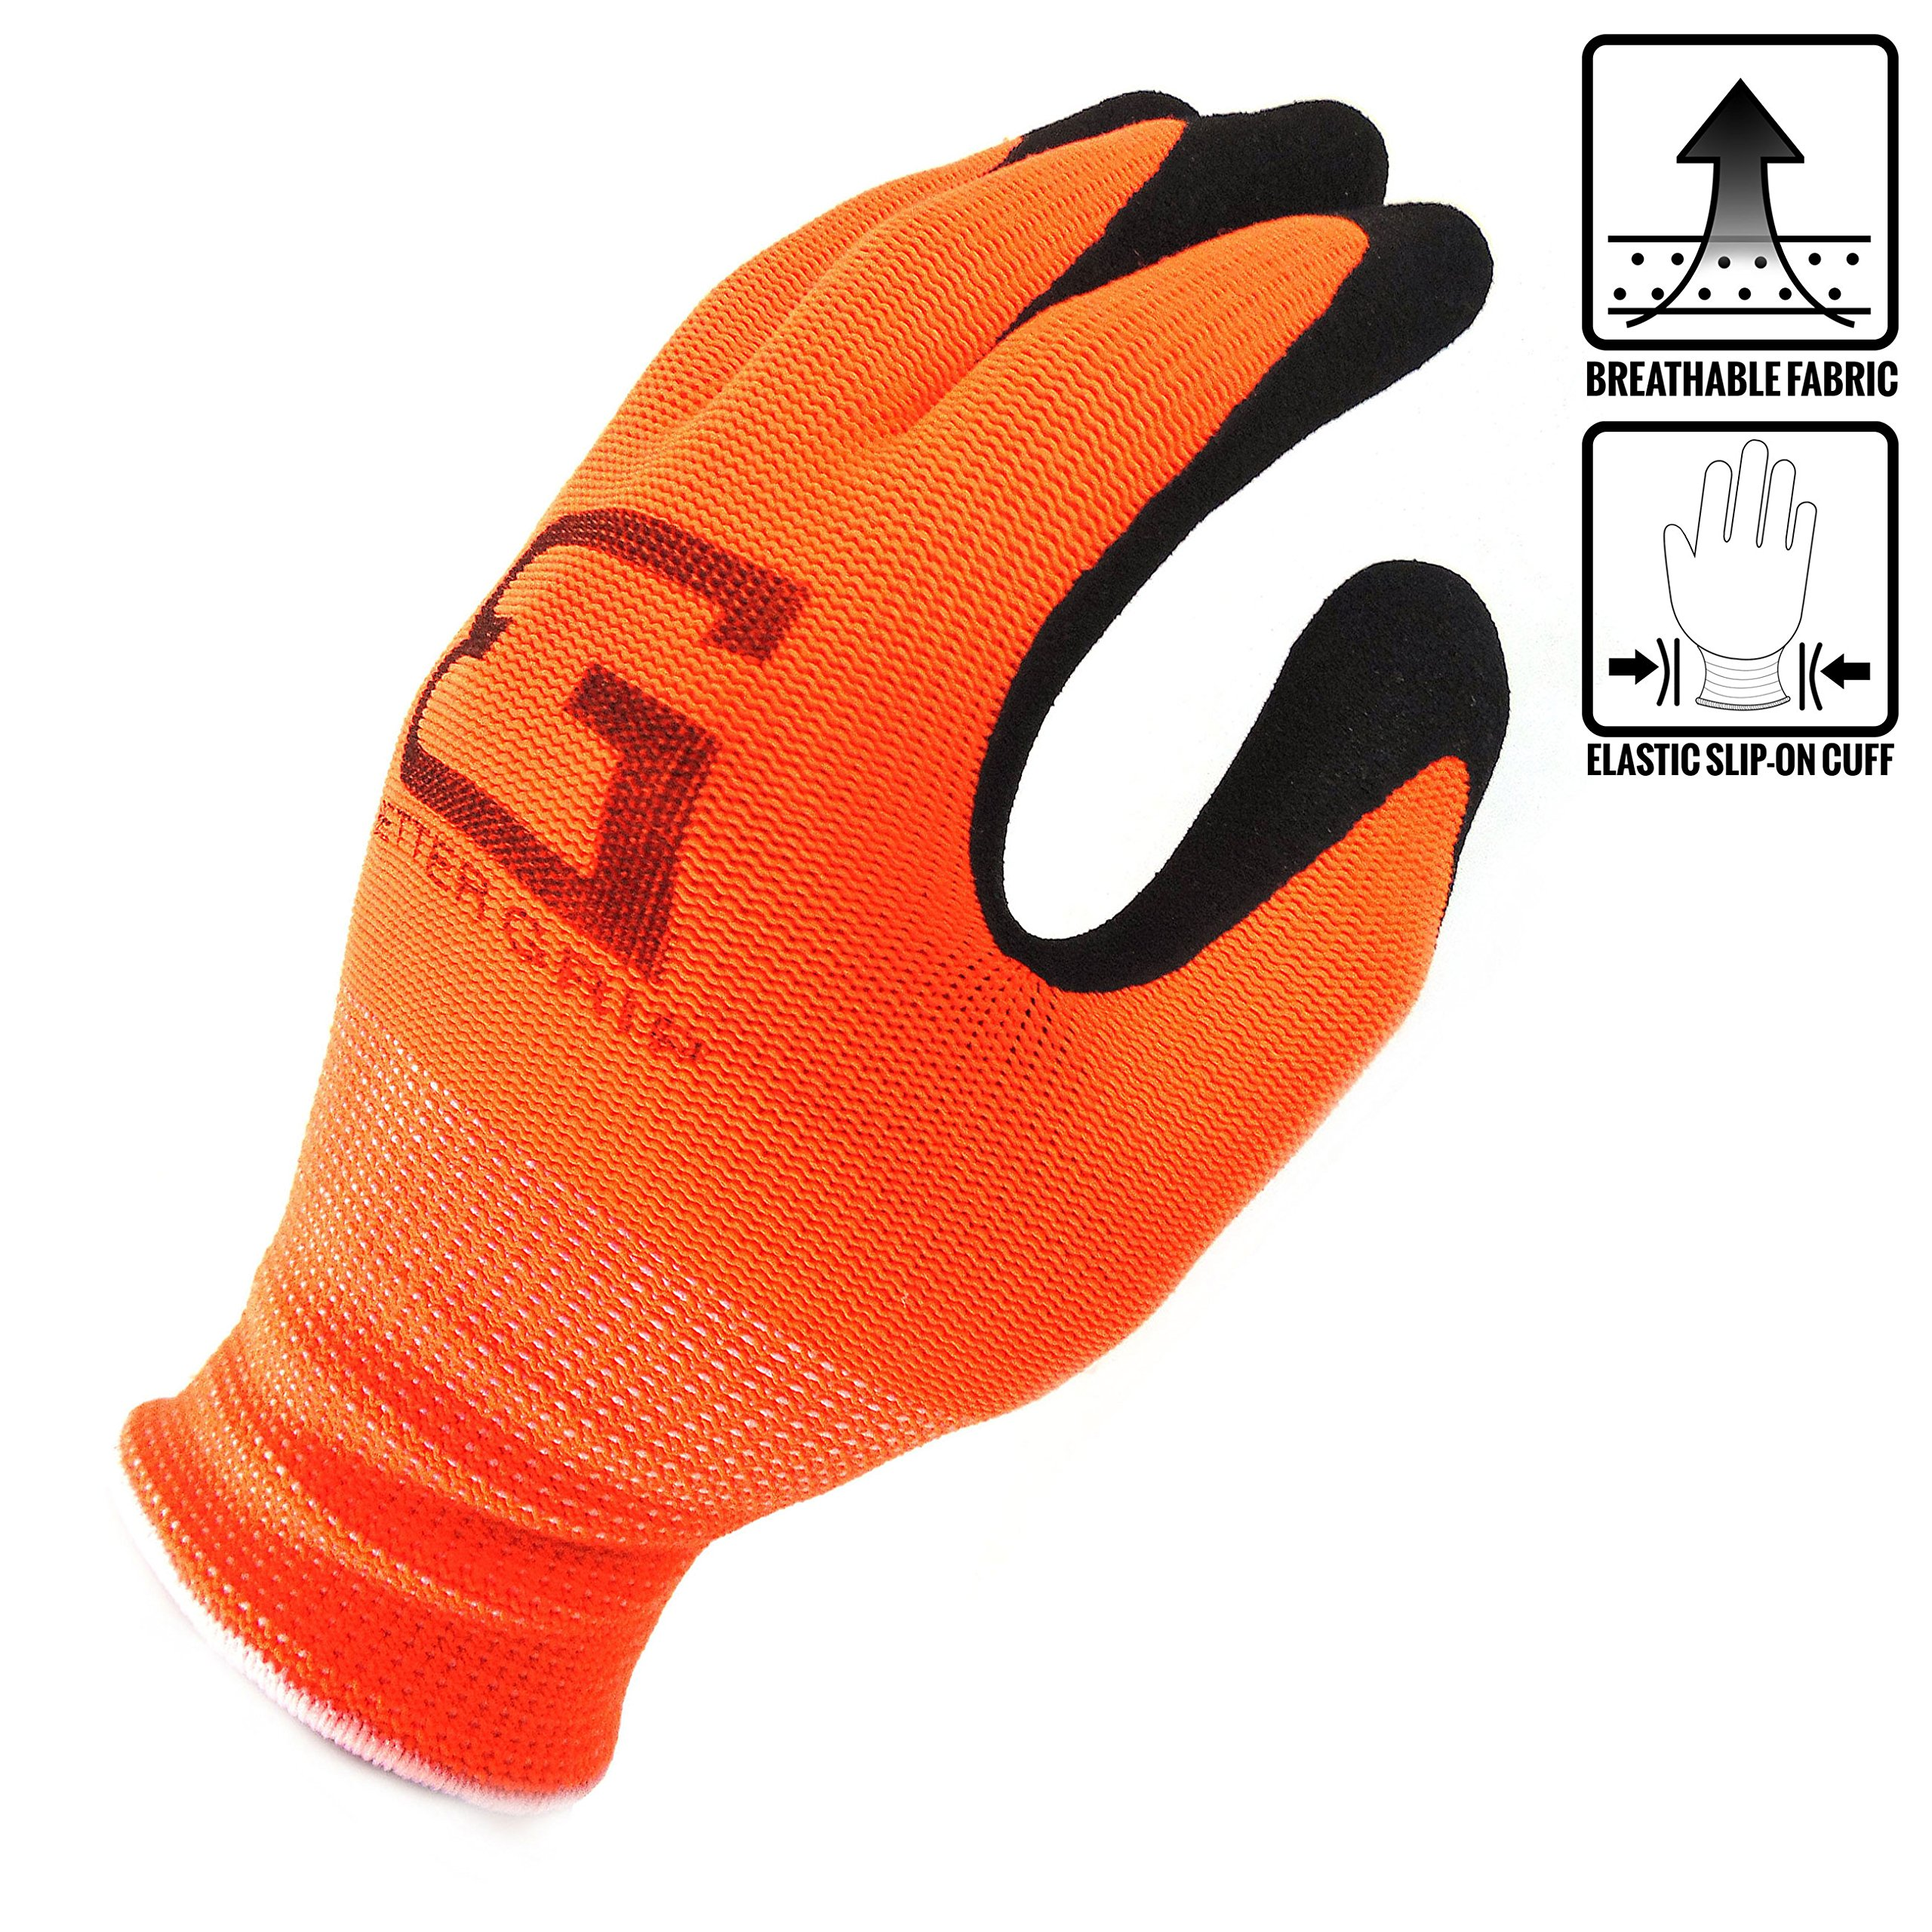 (Box Deal) BGS-OR-7S-CS, Better Grip Nylon Sandy Latex Coated Work Gloves, 144 Pairs/CS (Small, Hi-Vis Orange) by Better Grip